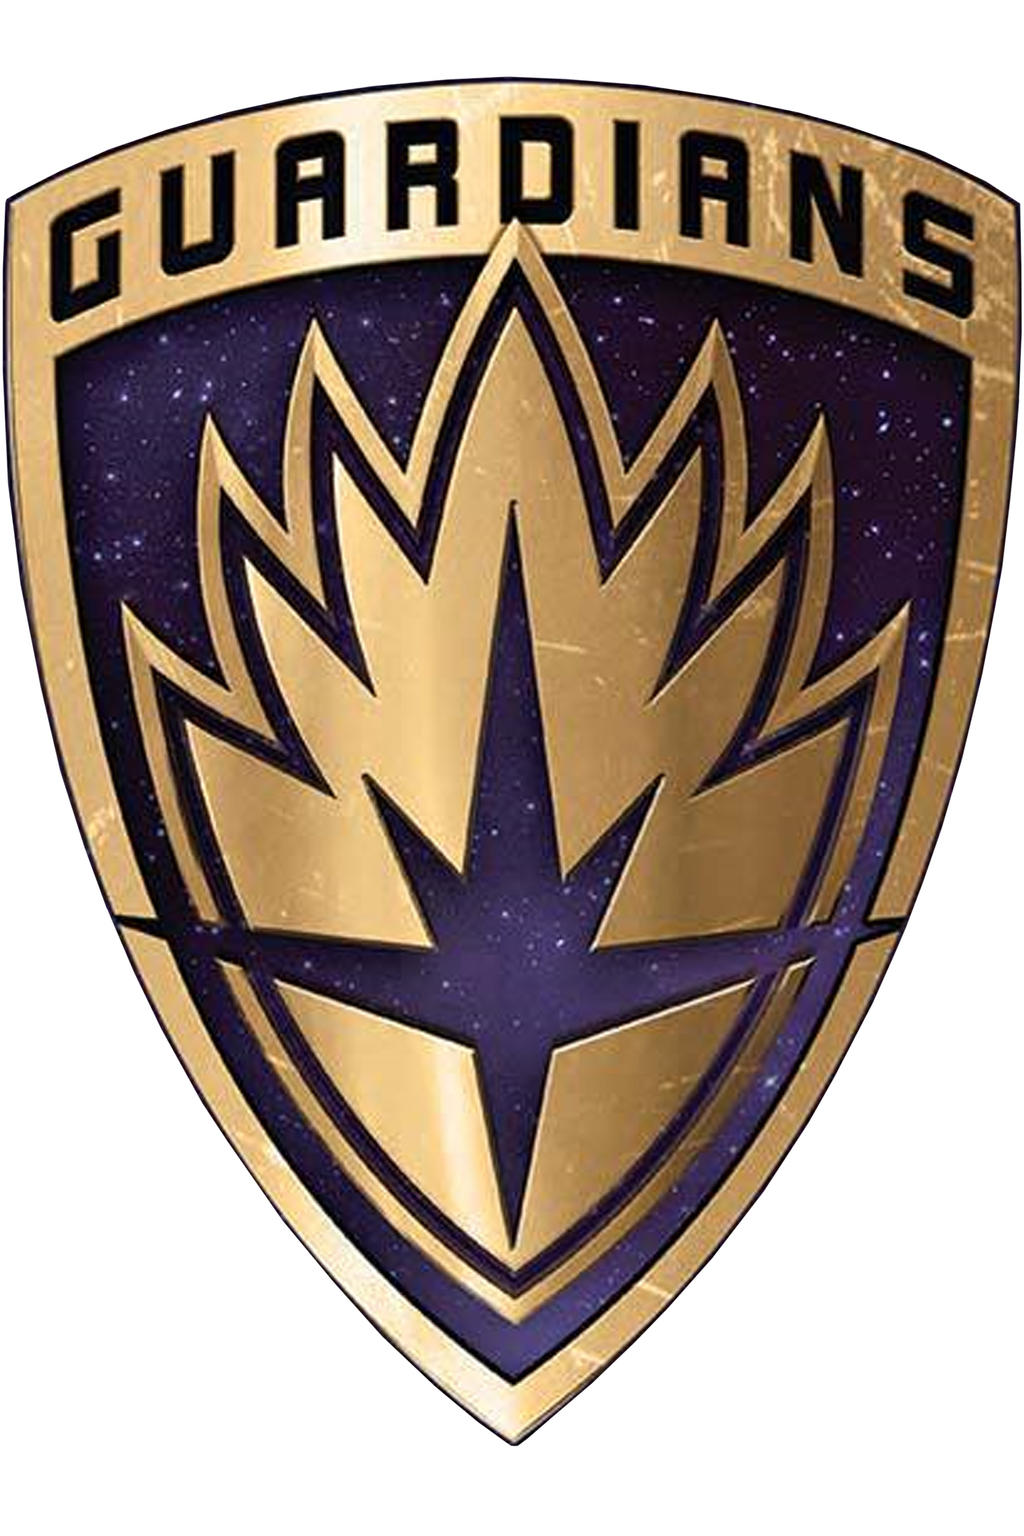 Request] Name These Alliance Emblem Logos Referring to Which